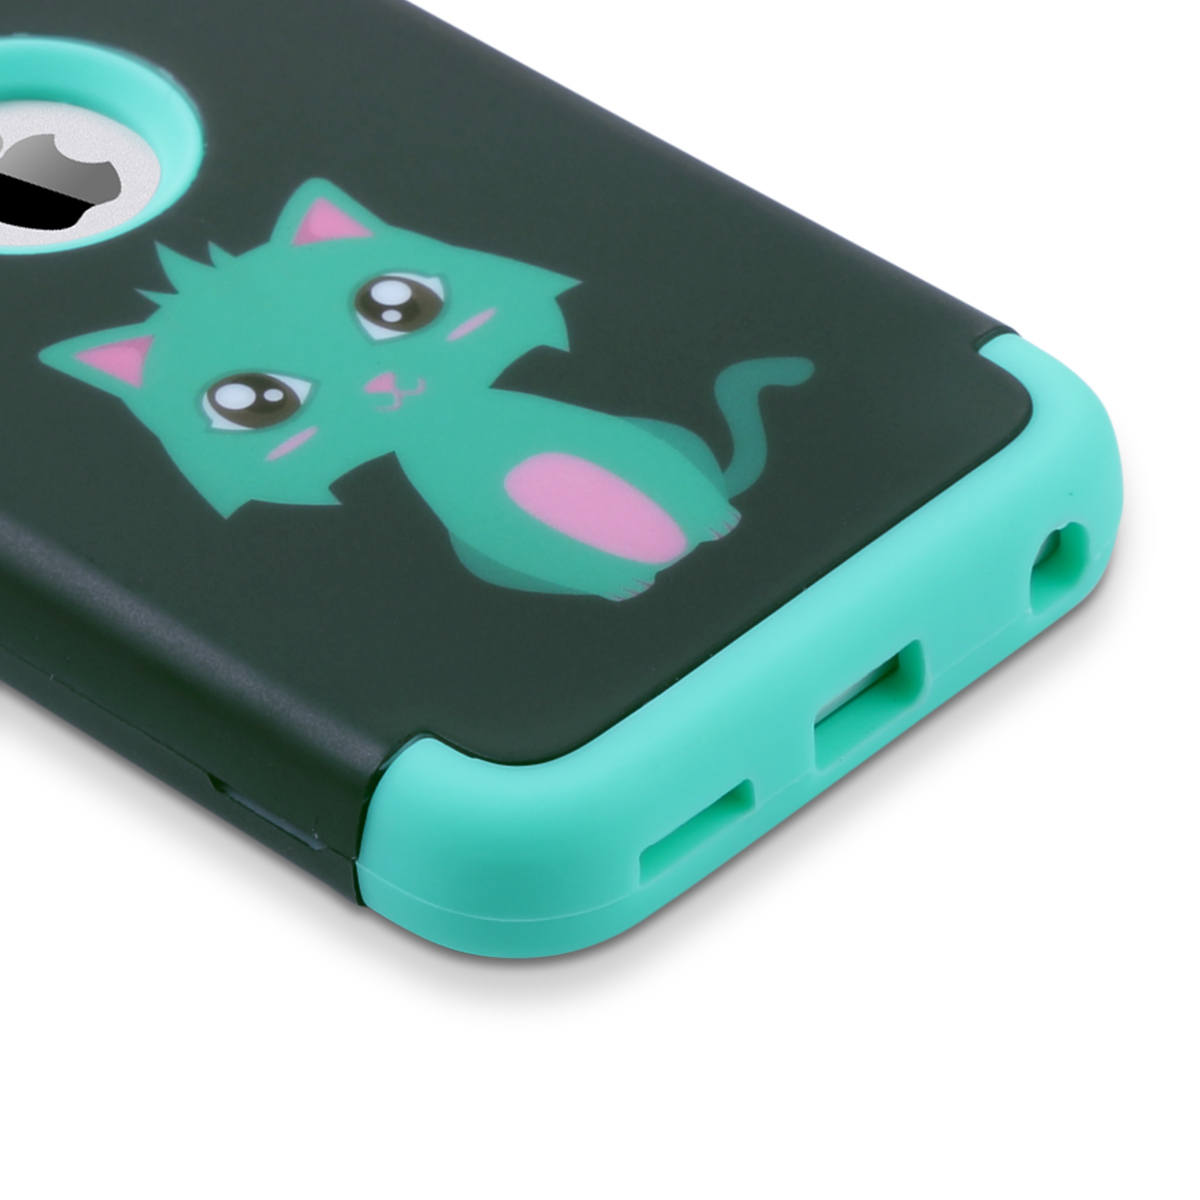 Hybrid-Hard-Protective-Silicon-TPU-Case-for-Apple-iPod-Touch-5-6th-Generation thumbnail 49